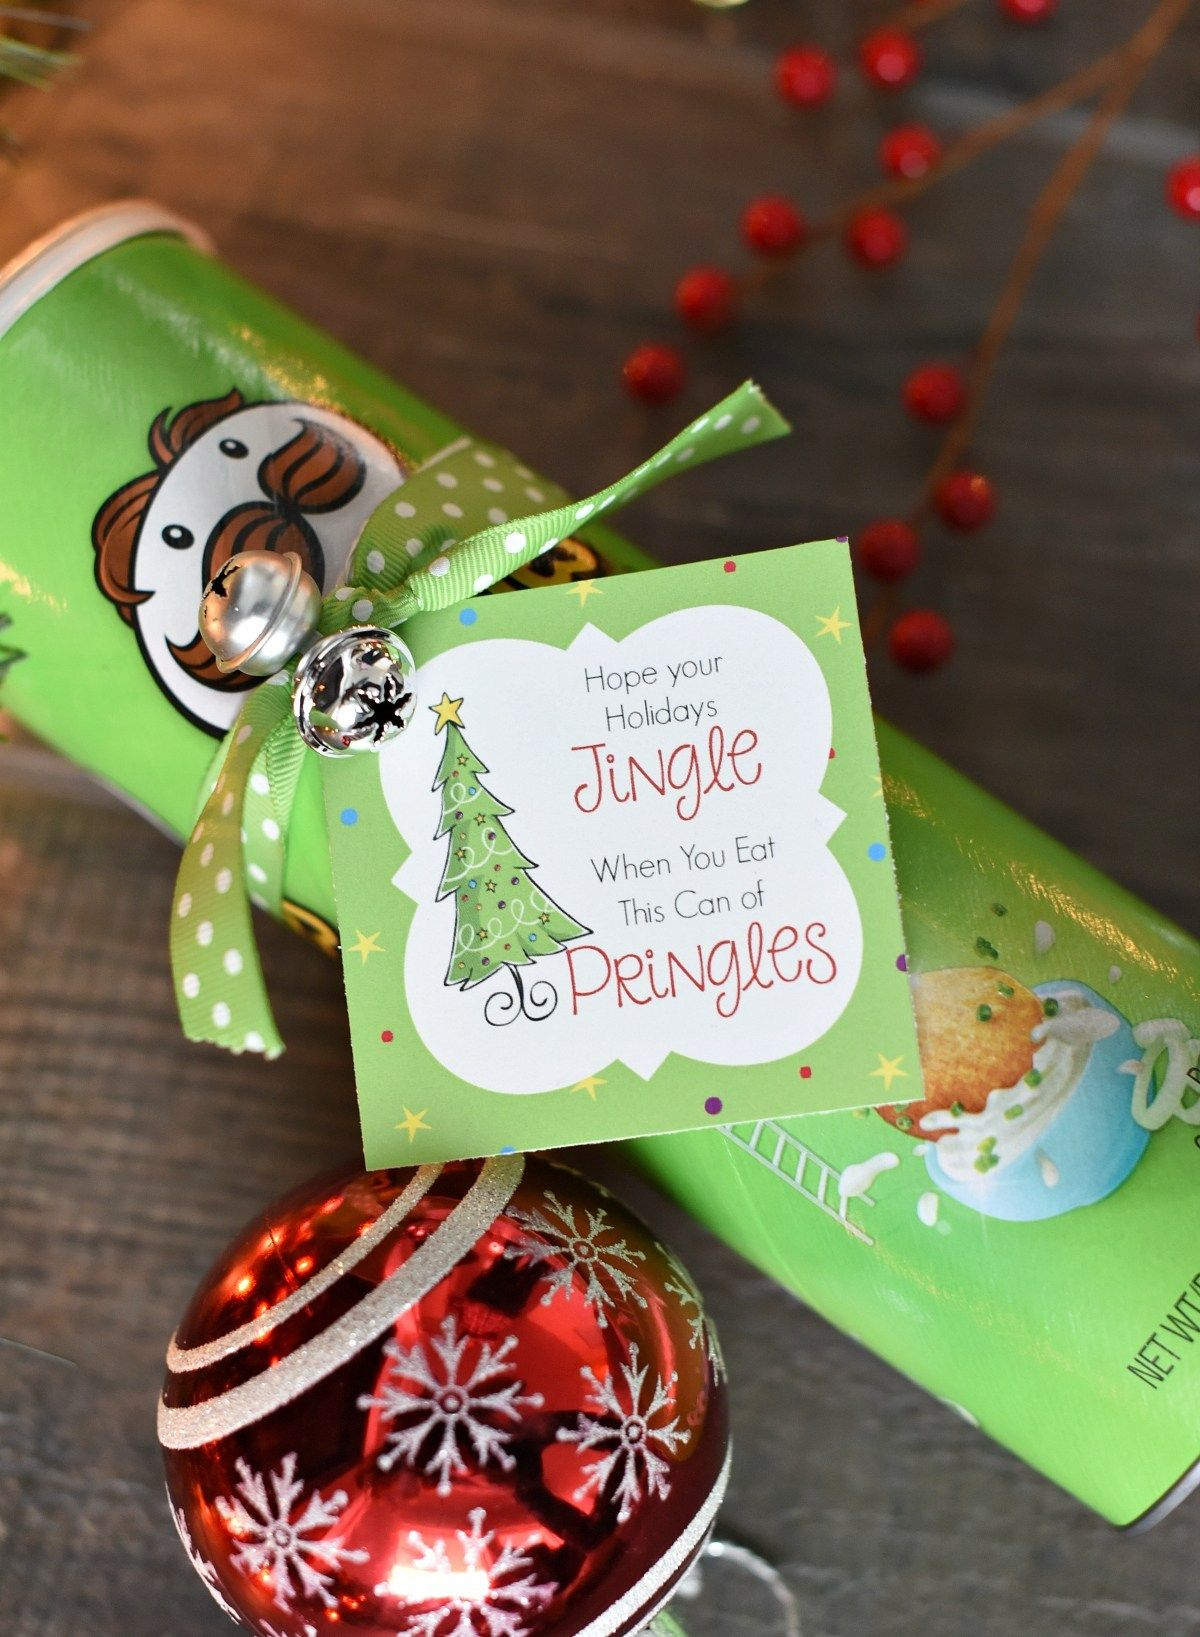 Funny Christmas Gift Idea with Pringles #teacherchristmasgiftideas